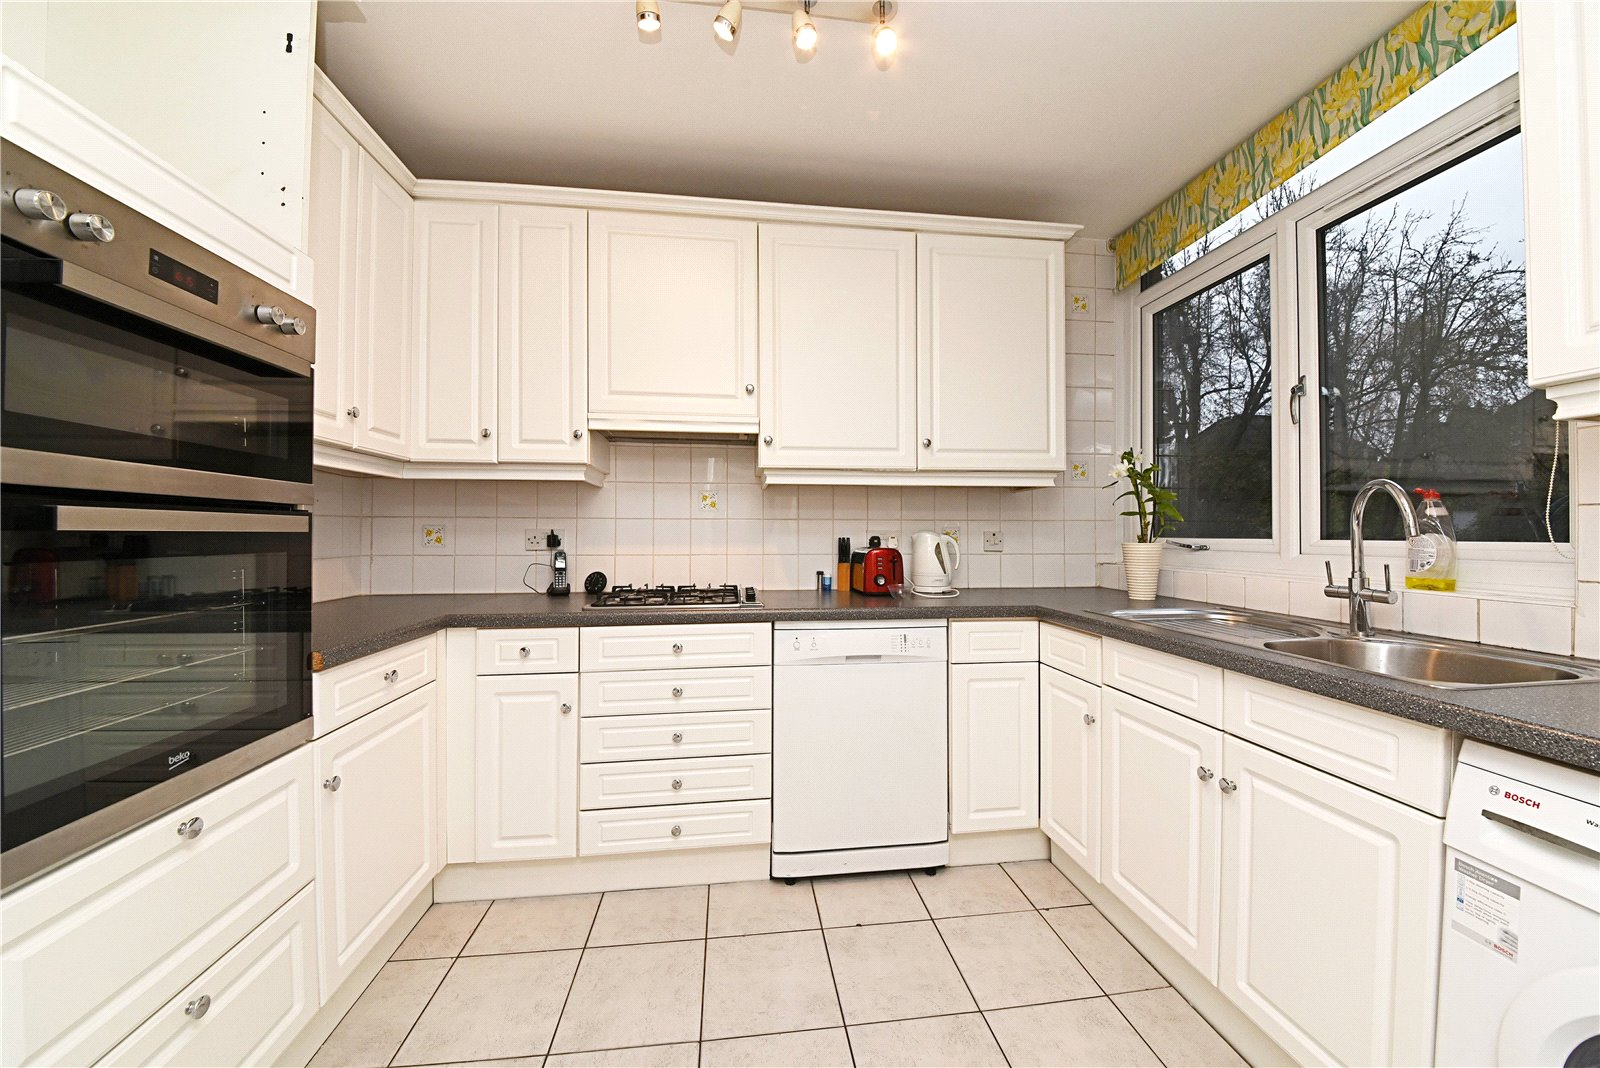 2 bed apartment for sale in Hendon, NW4 1RB  - Property Image 1